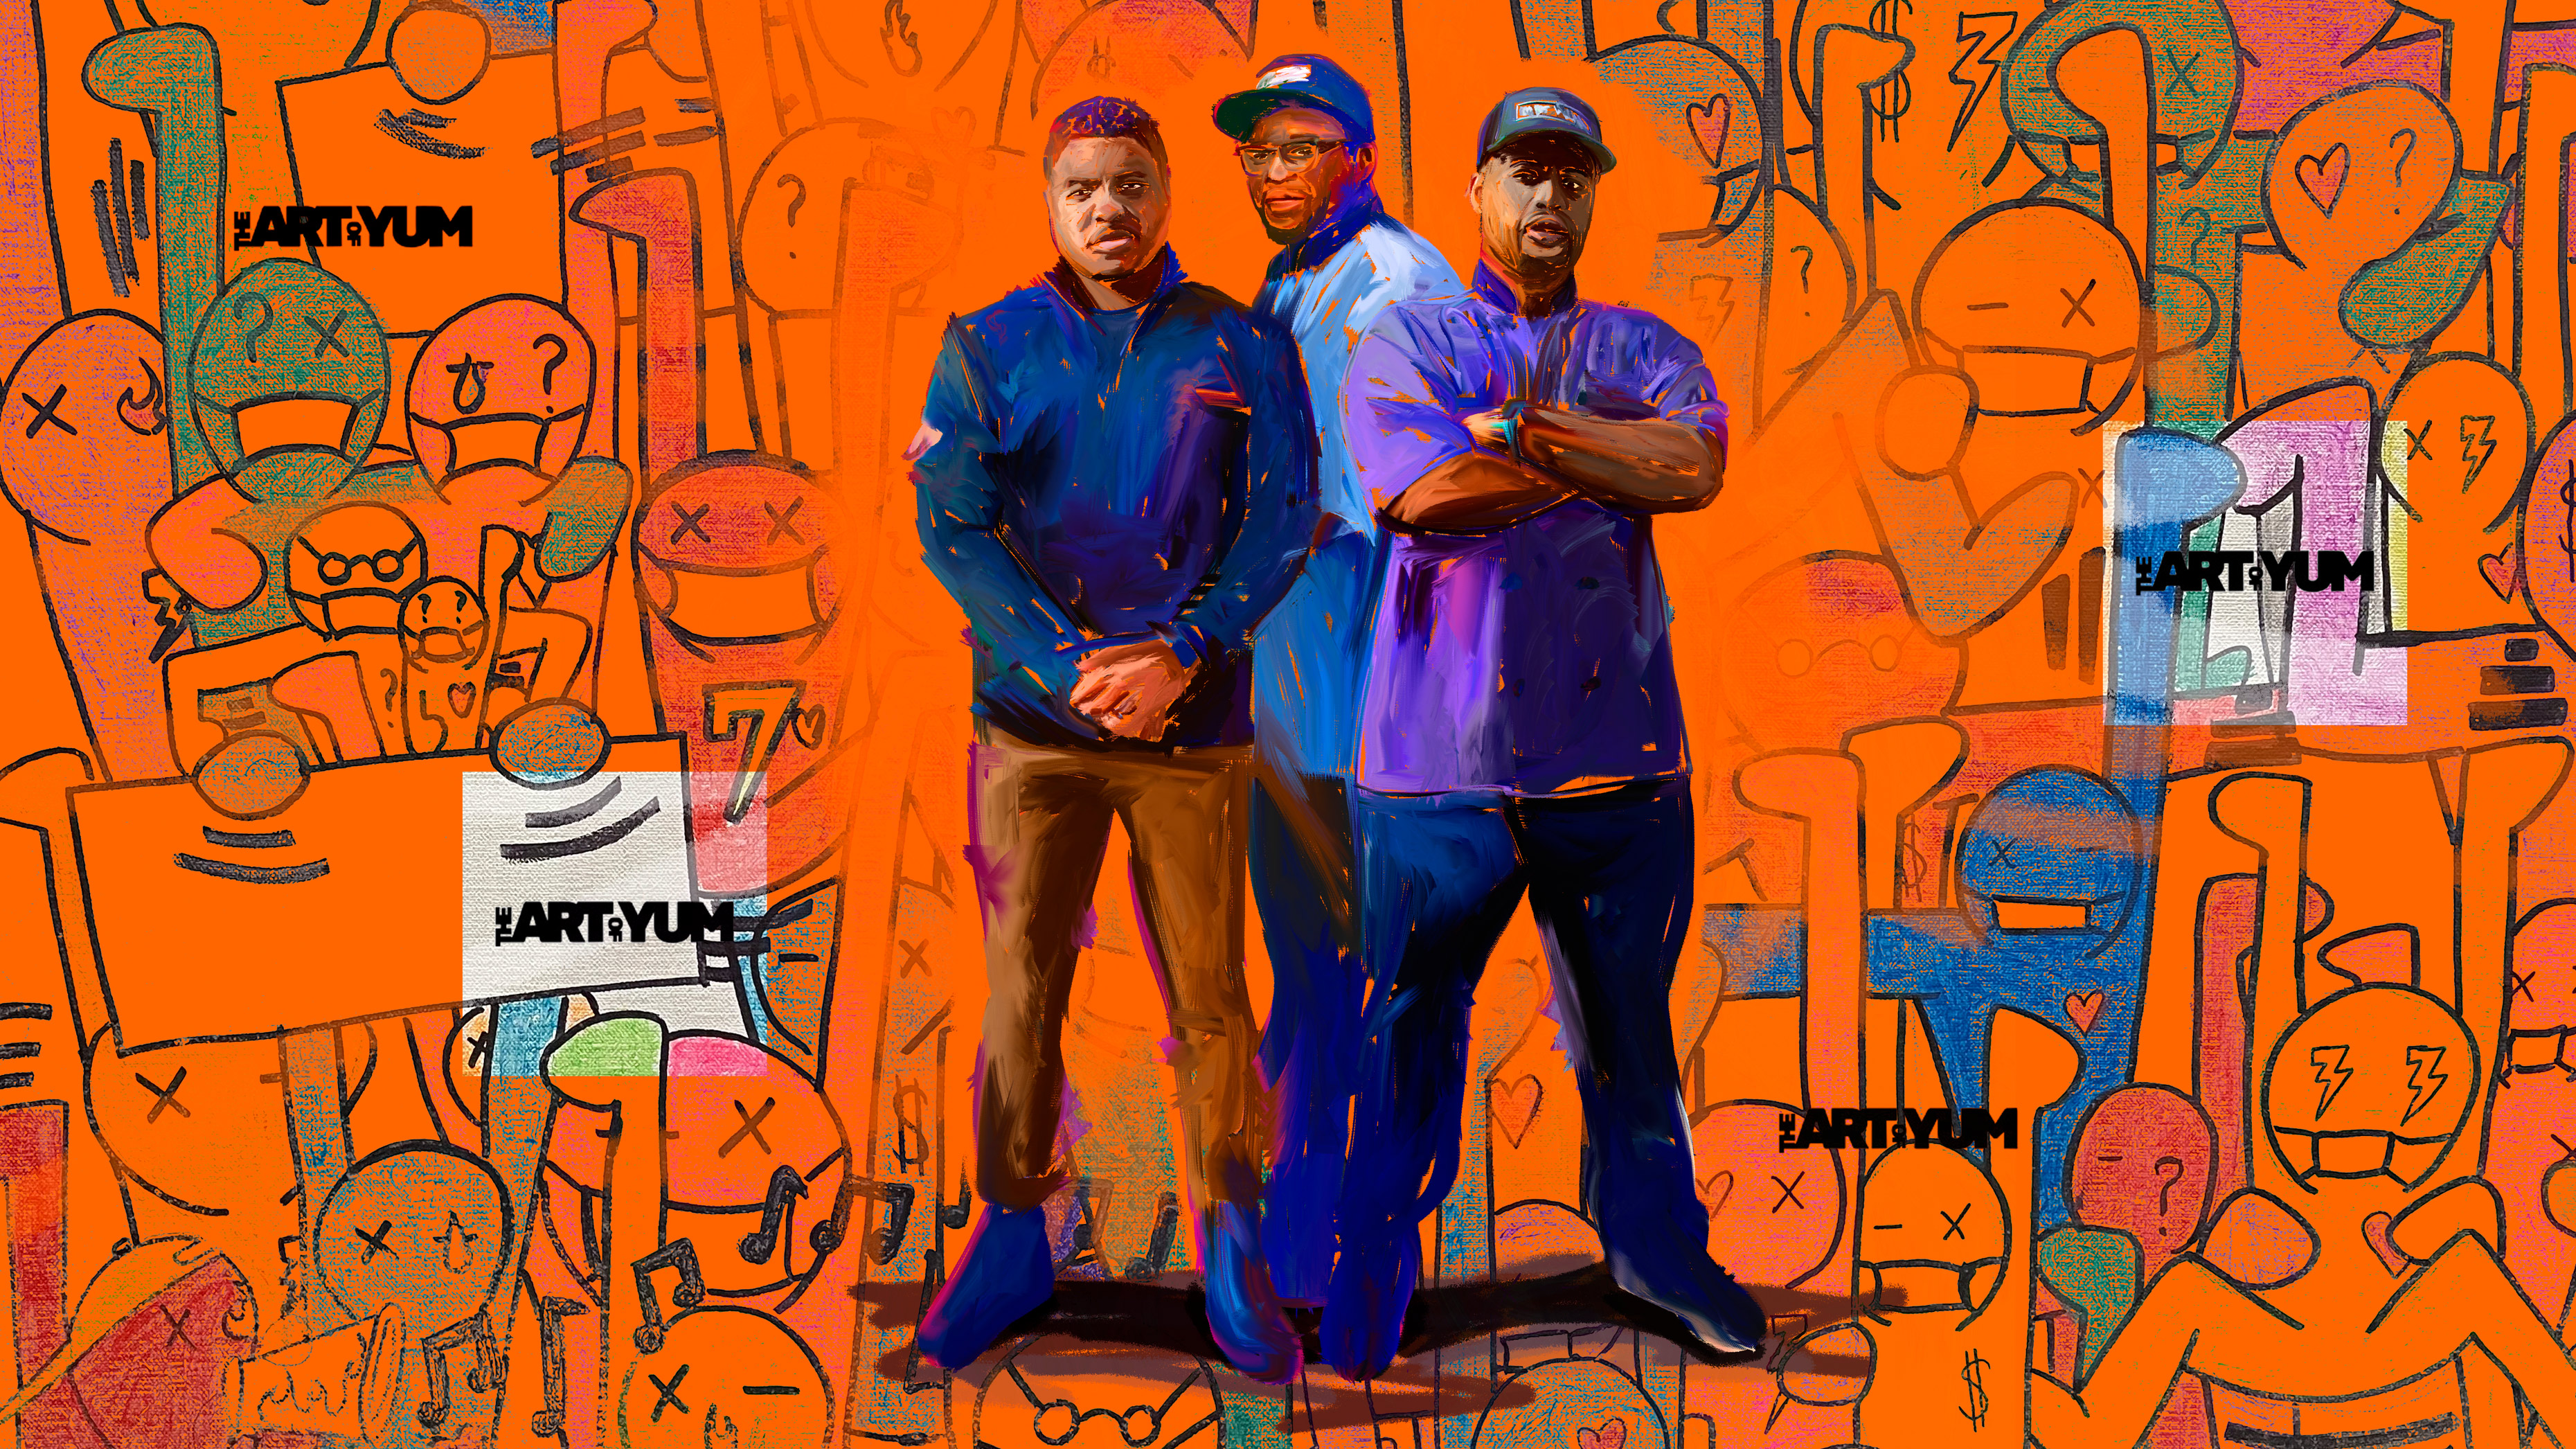 The Art Of Yum owners Michone Arrington, James Thompson and Donte Jones painted on top of illustrated art done by Arrington's children.